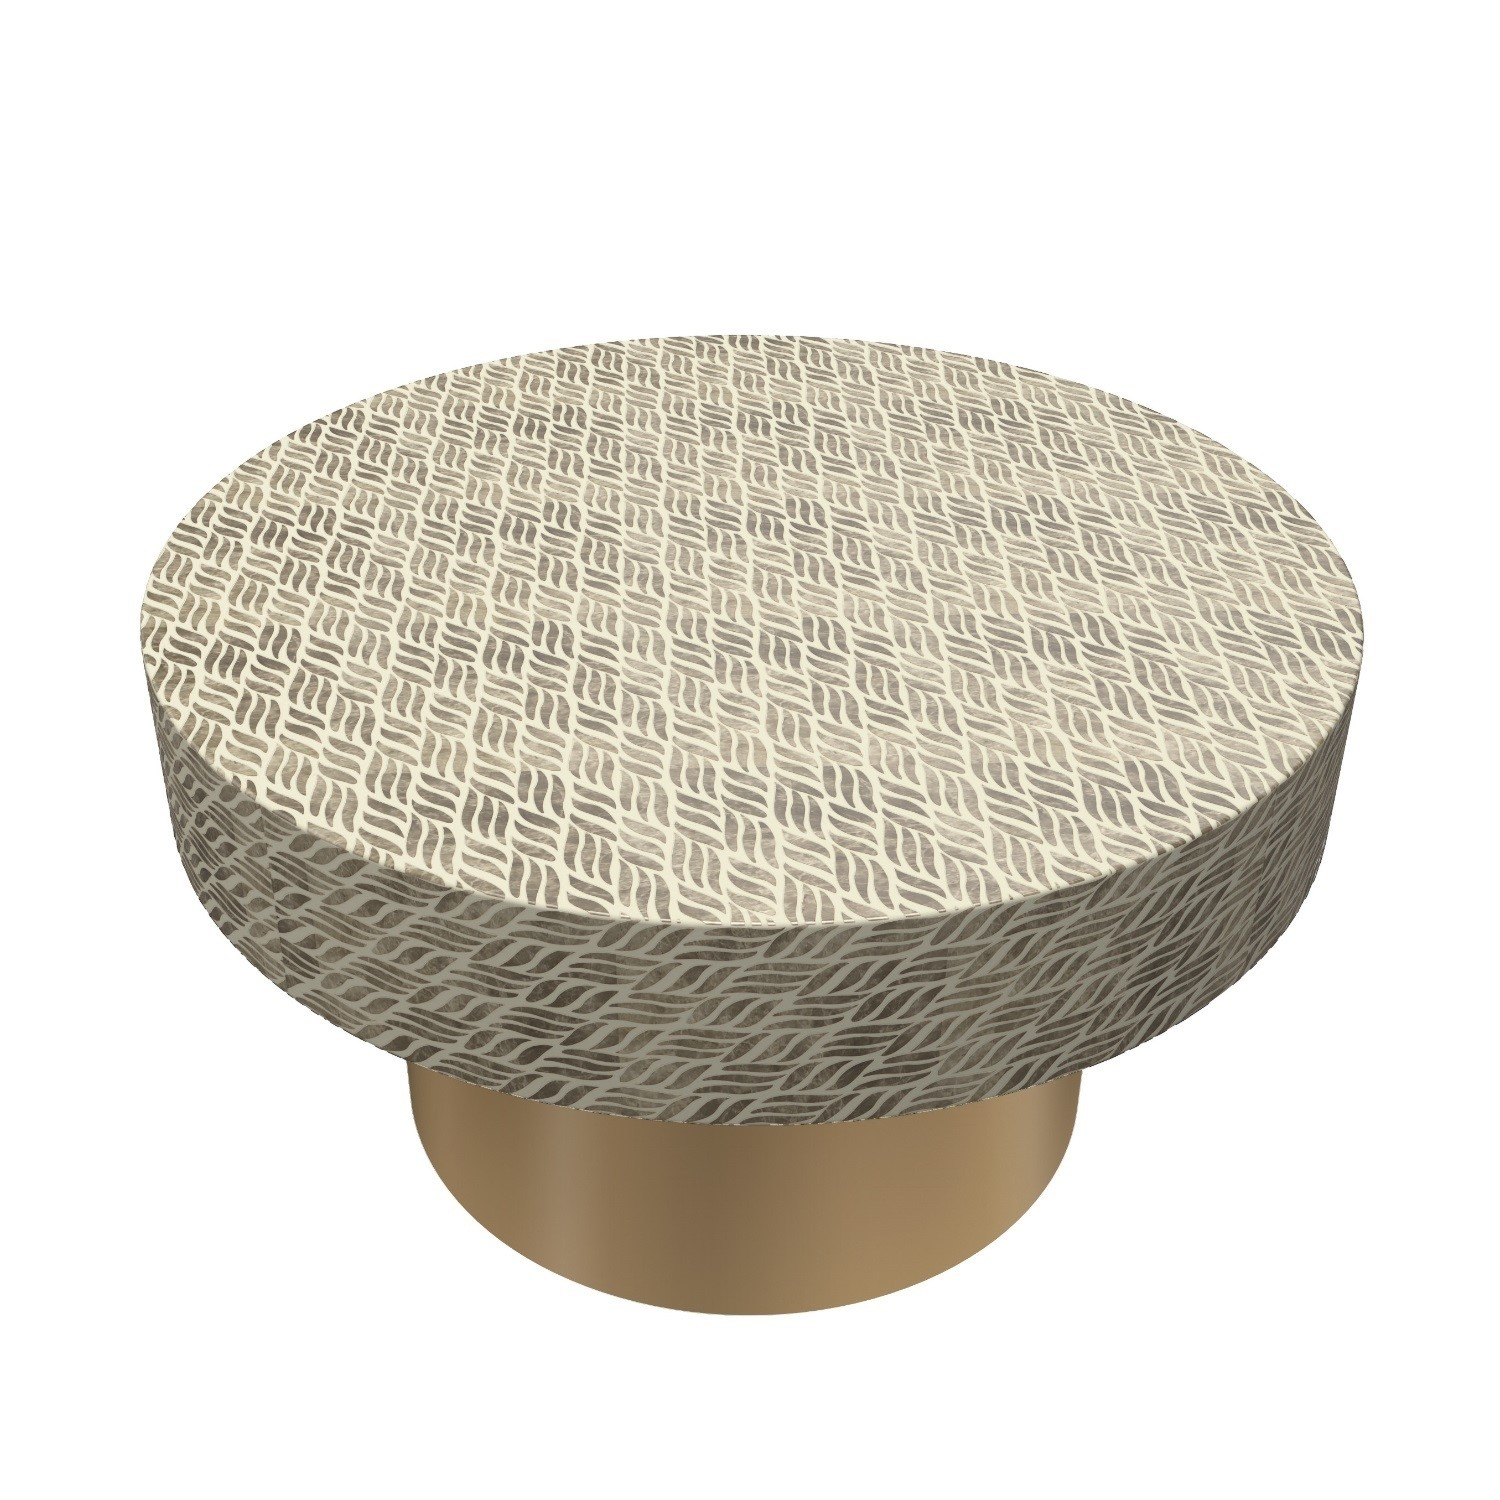 Gold & White Round Patterned Coffee Table  Iris